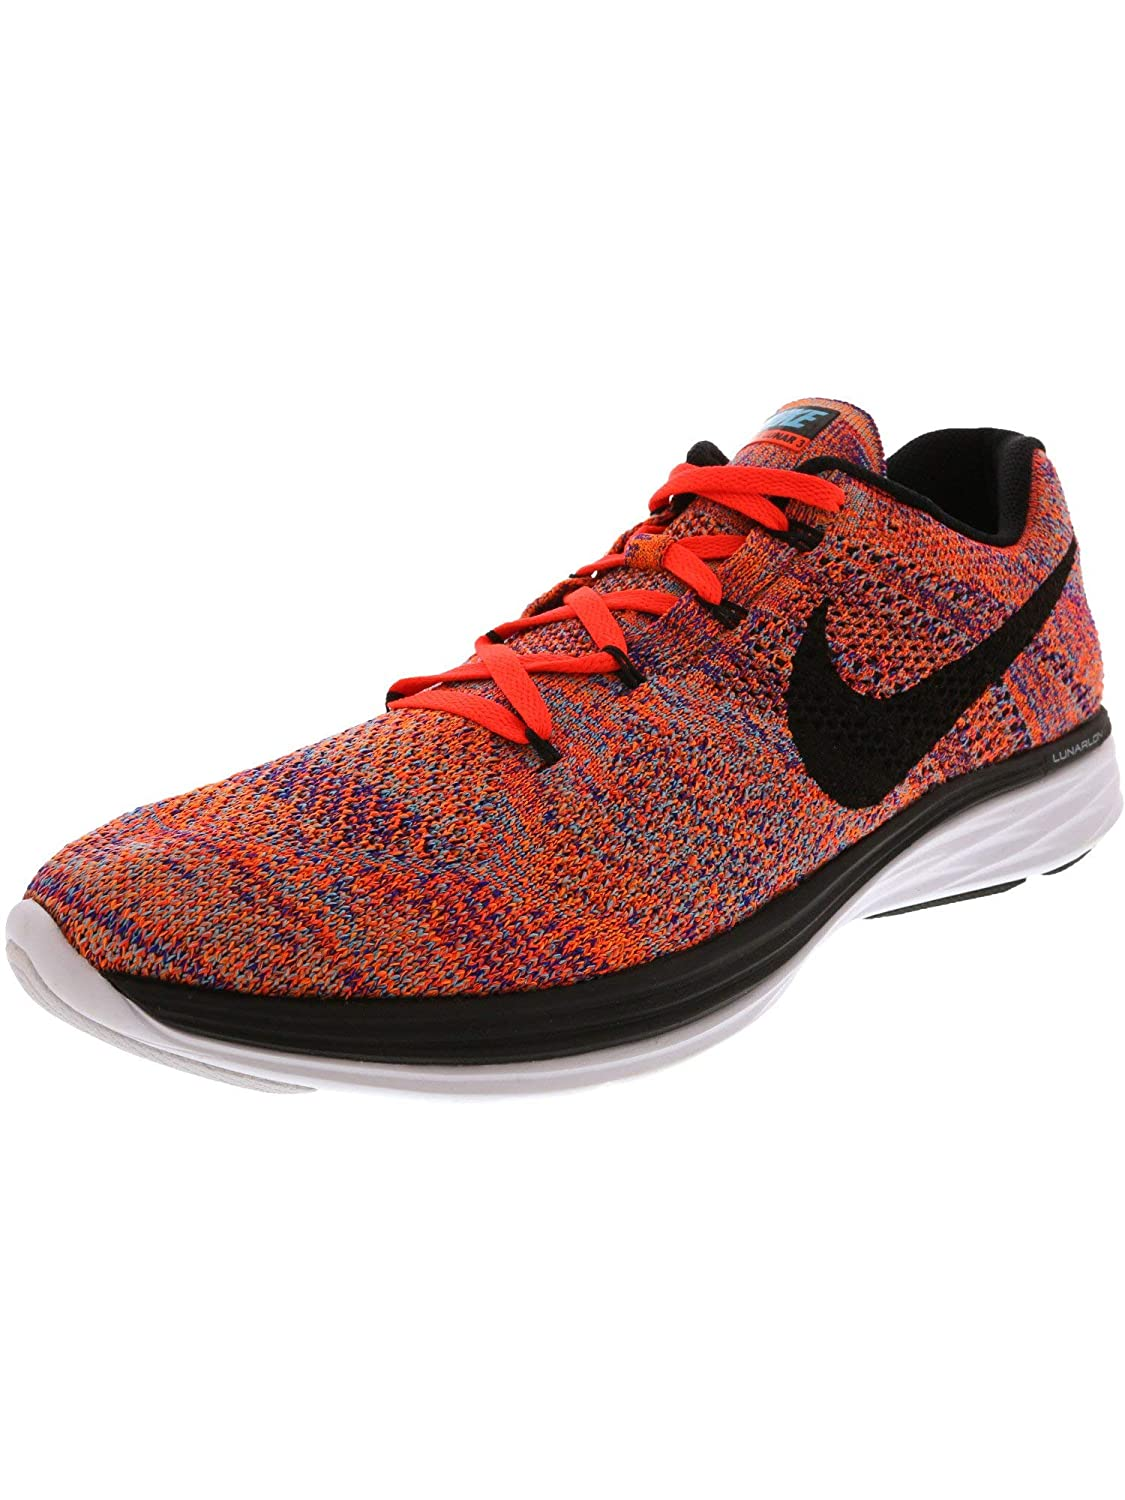 huge selection of 146e9 6bd46 NIKE Mens Flyknit Lunar3 Running Shoes